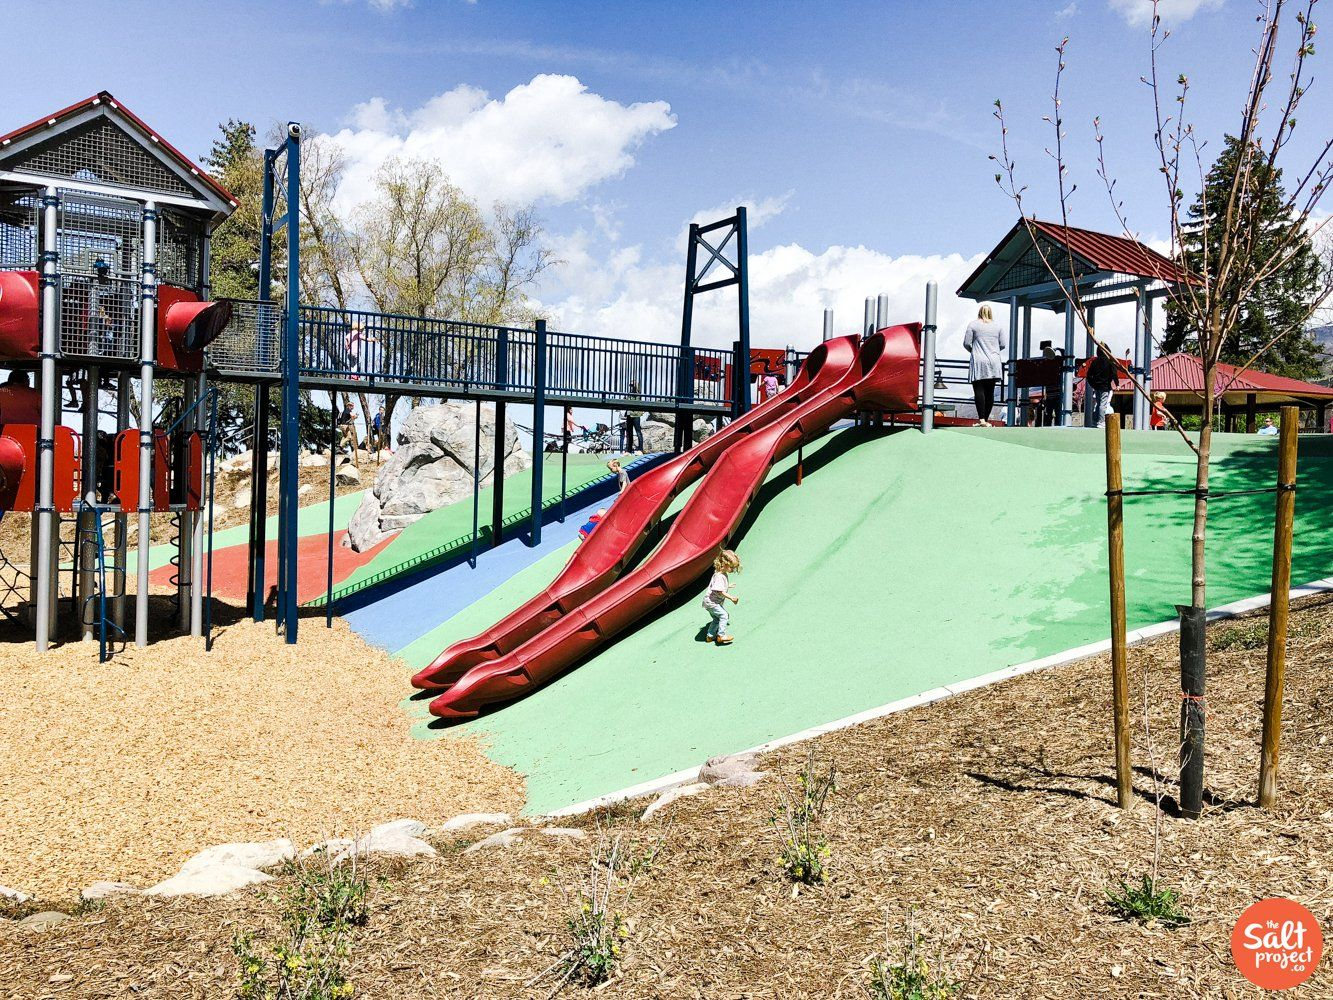 Creekside Park In Bountiful The Salt Project Things To Do In Utah With Kids Park Bountiful Water Park